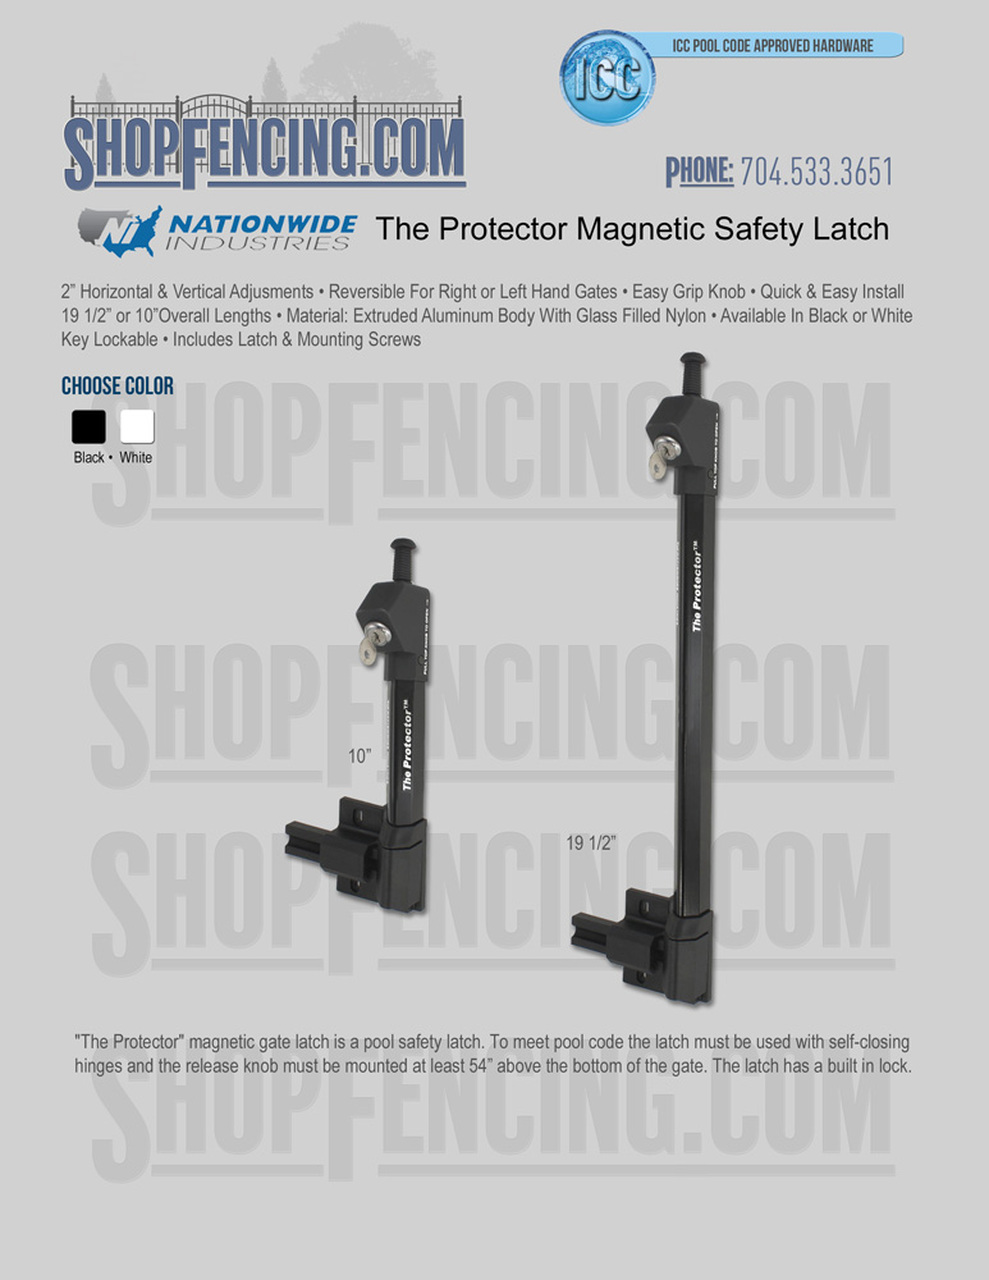 Nationwide Industries Magnetic Safety Gate Latch